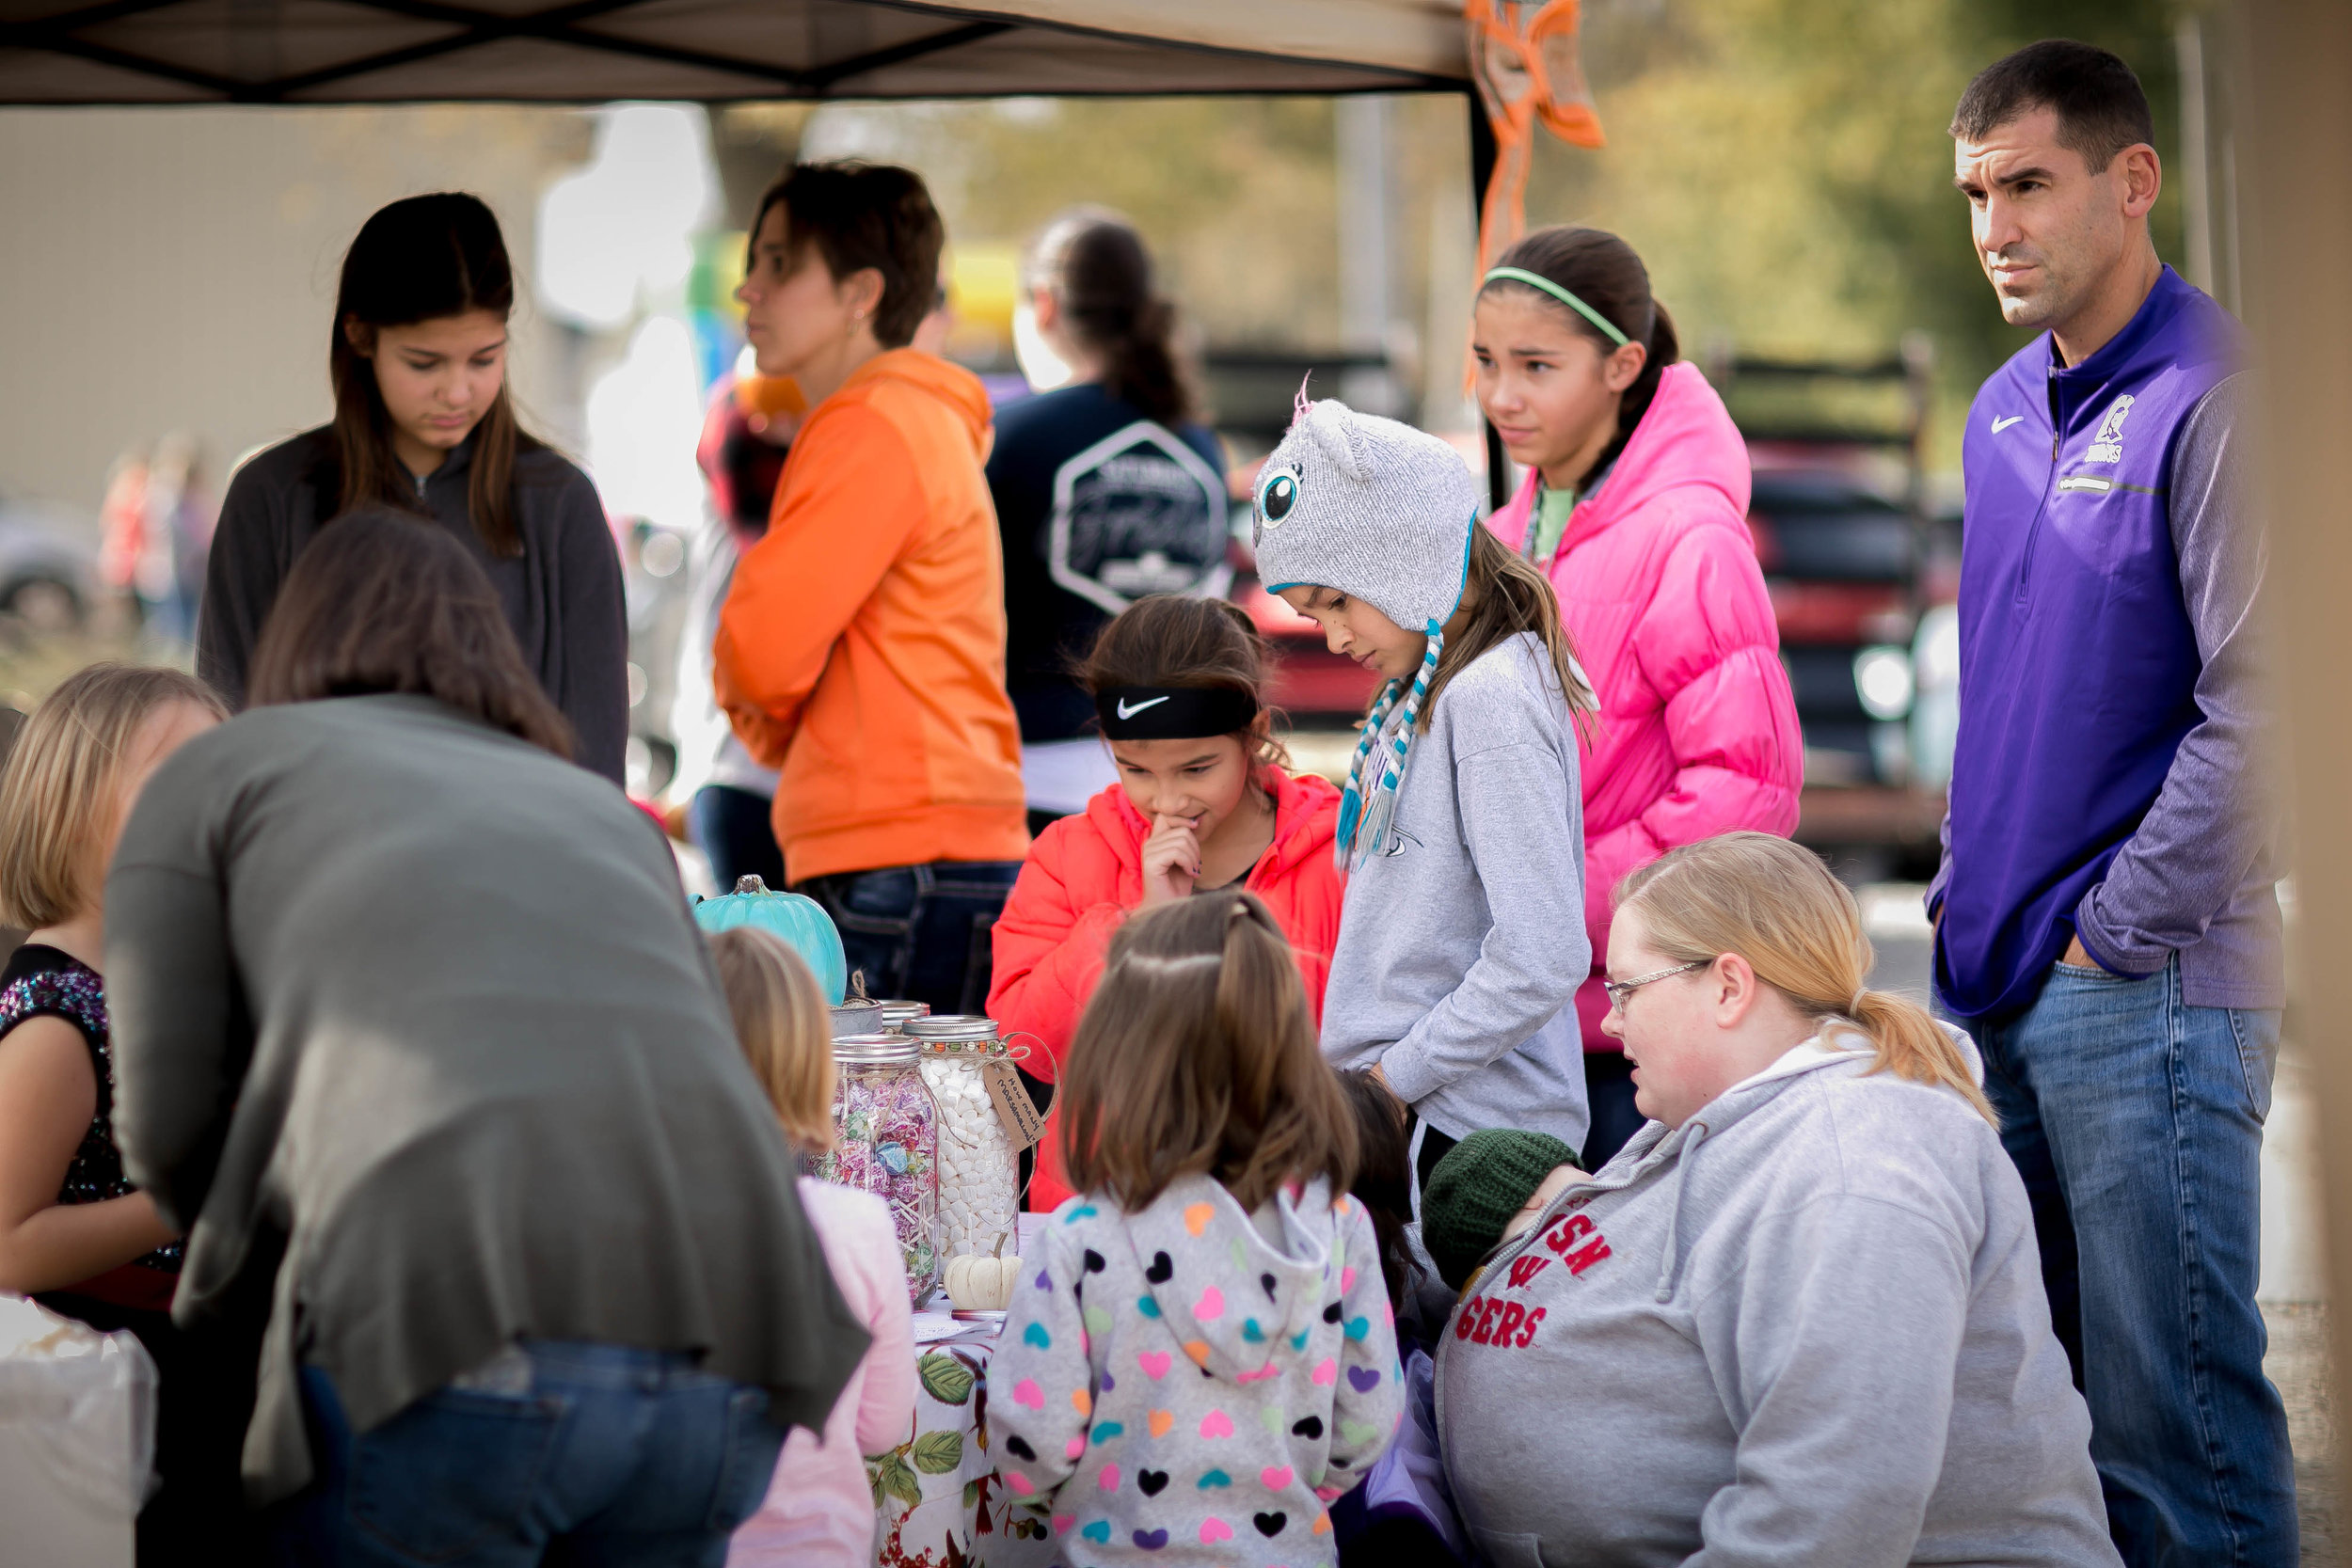 Over 600 people were in attendance to celebrate Common Grounds One Year Anniversary Fall Festival.